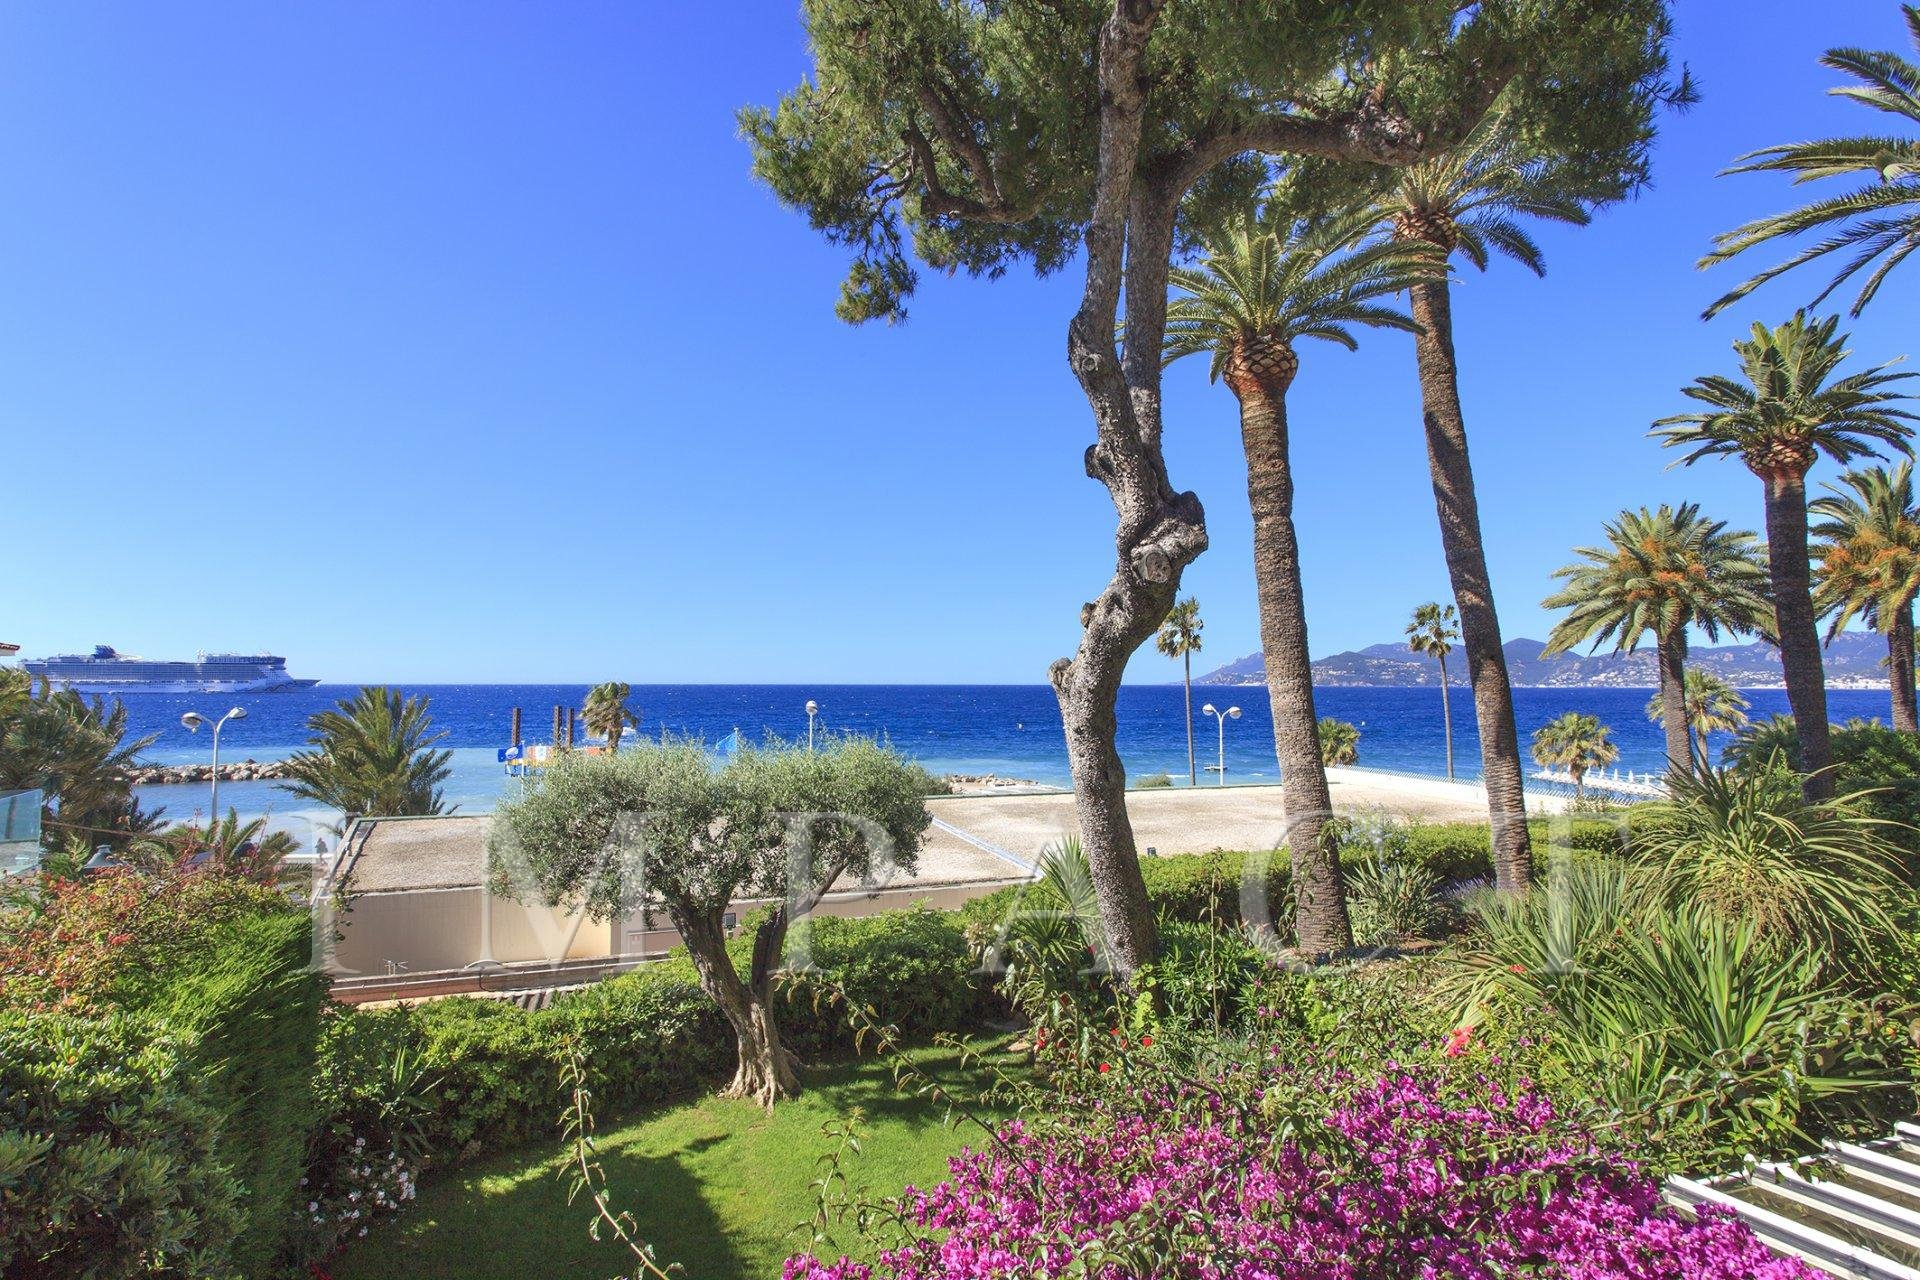 3 bedrooms duplex to rent with sea view, Cannes